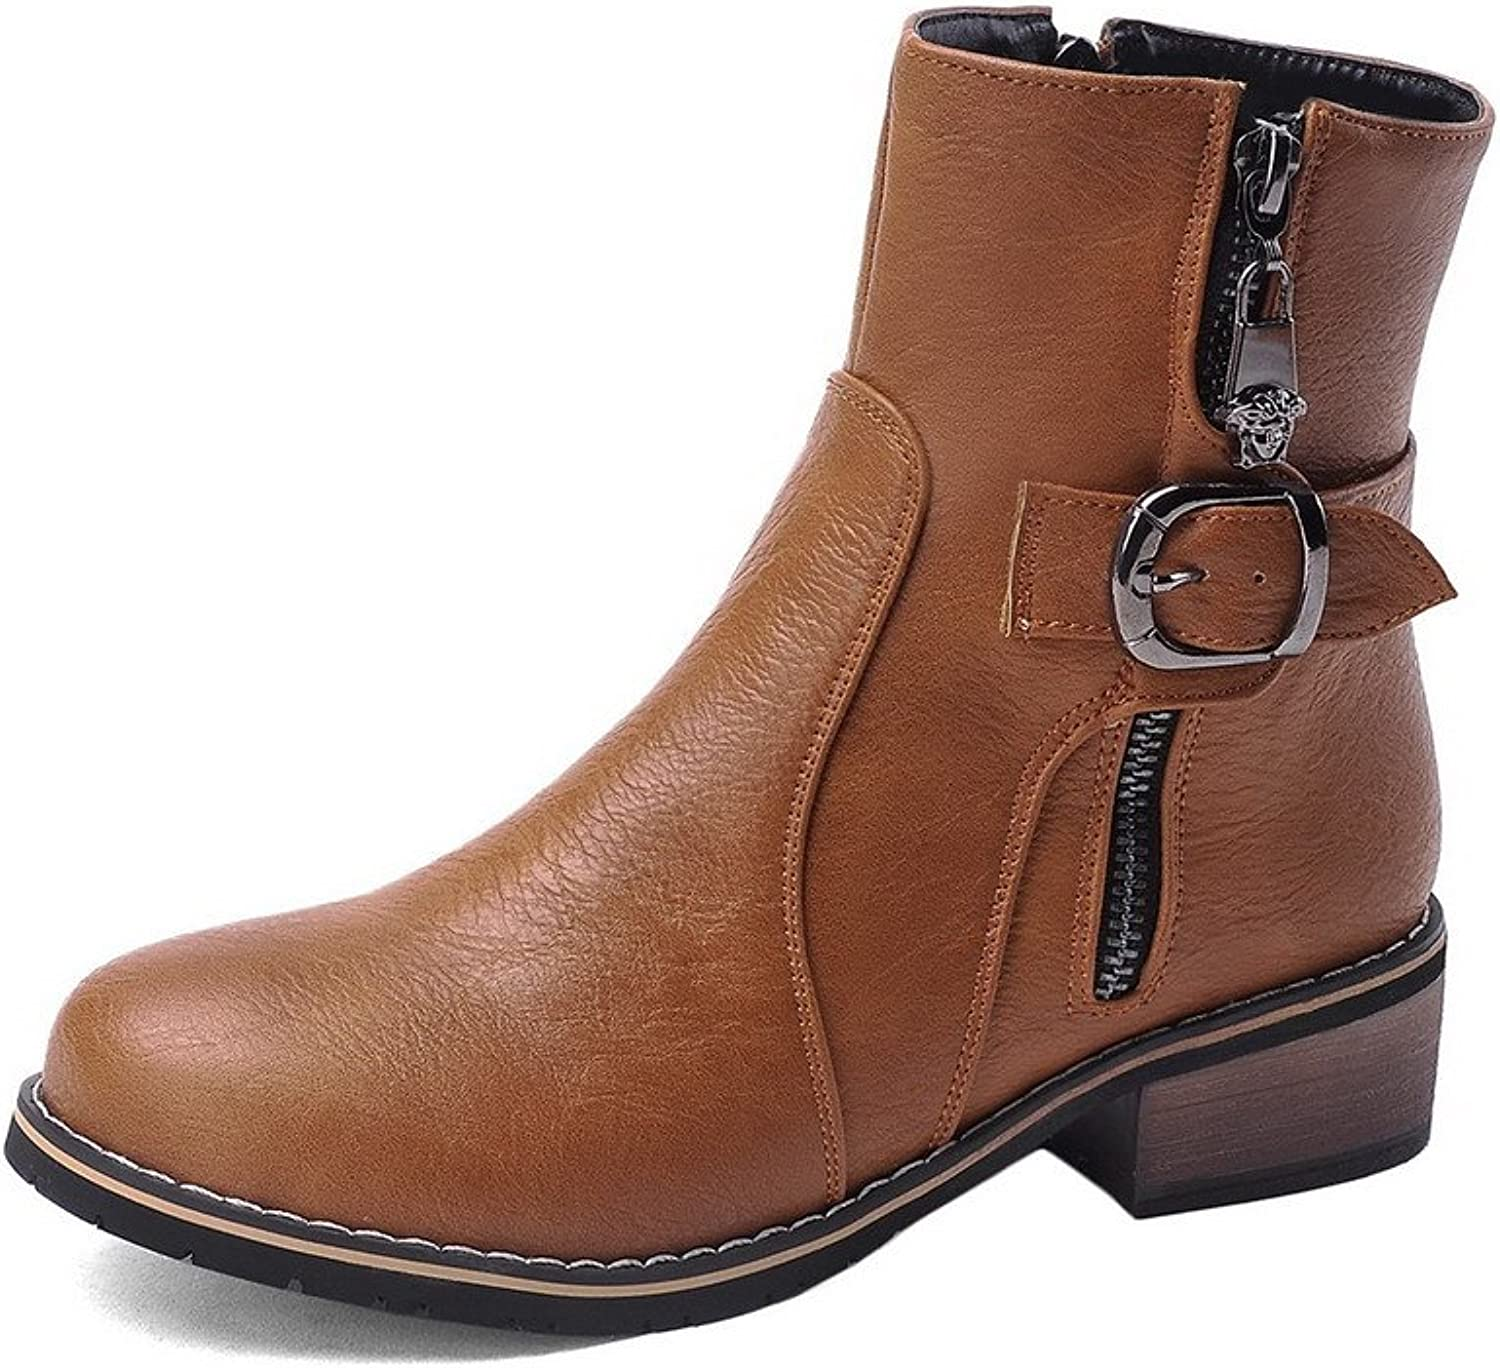 WeenFashion Women's Solid Round Closed toe Blend Materials PU Metal Buckles Boots